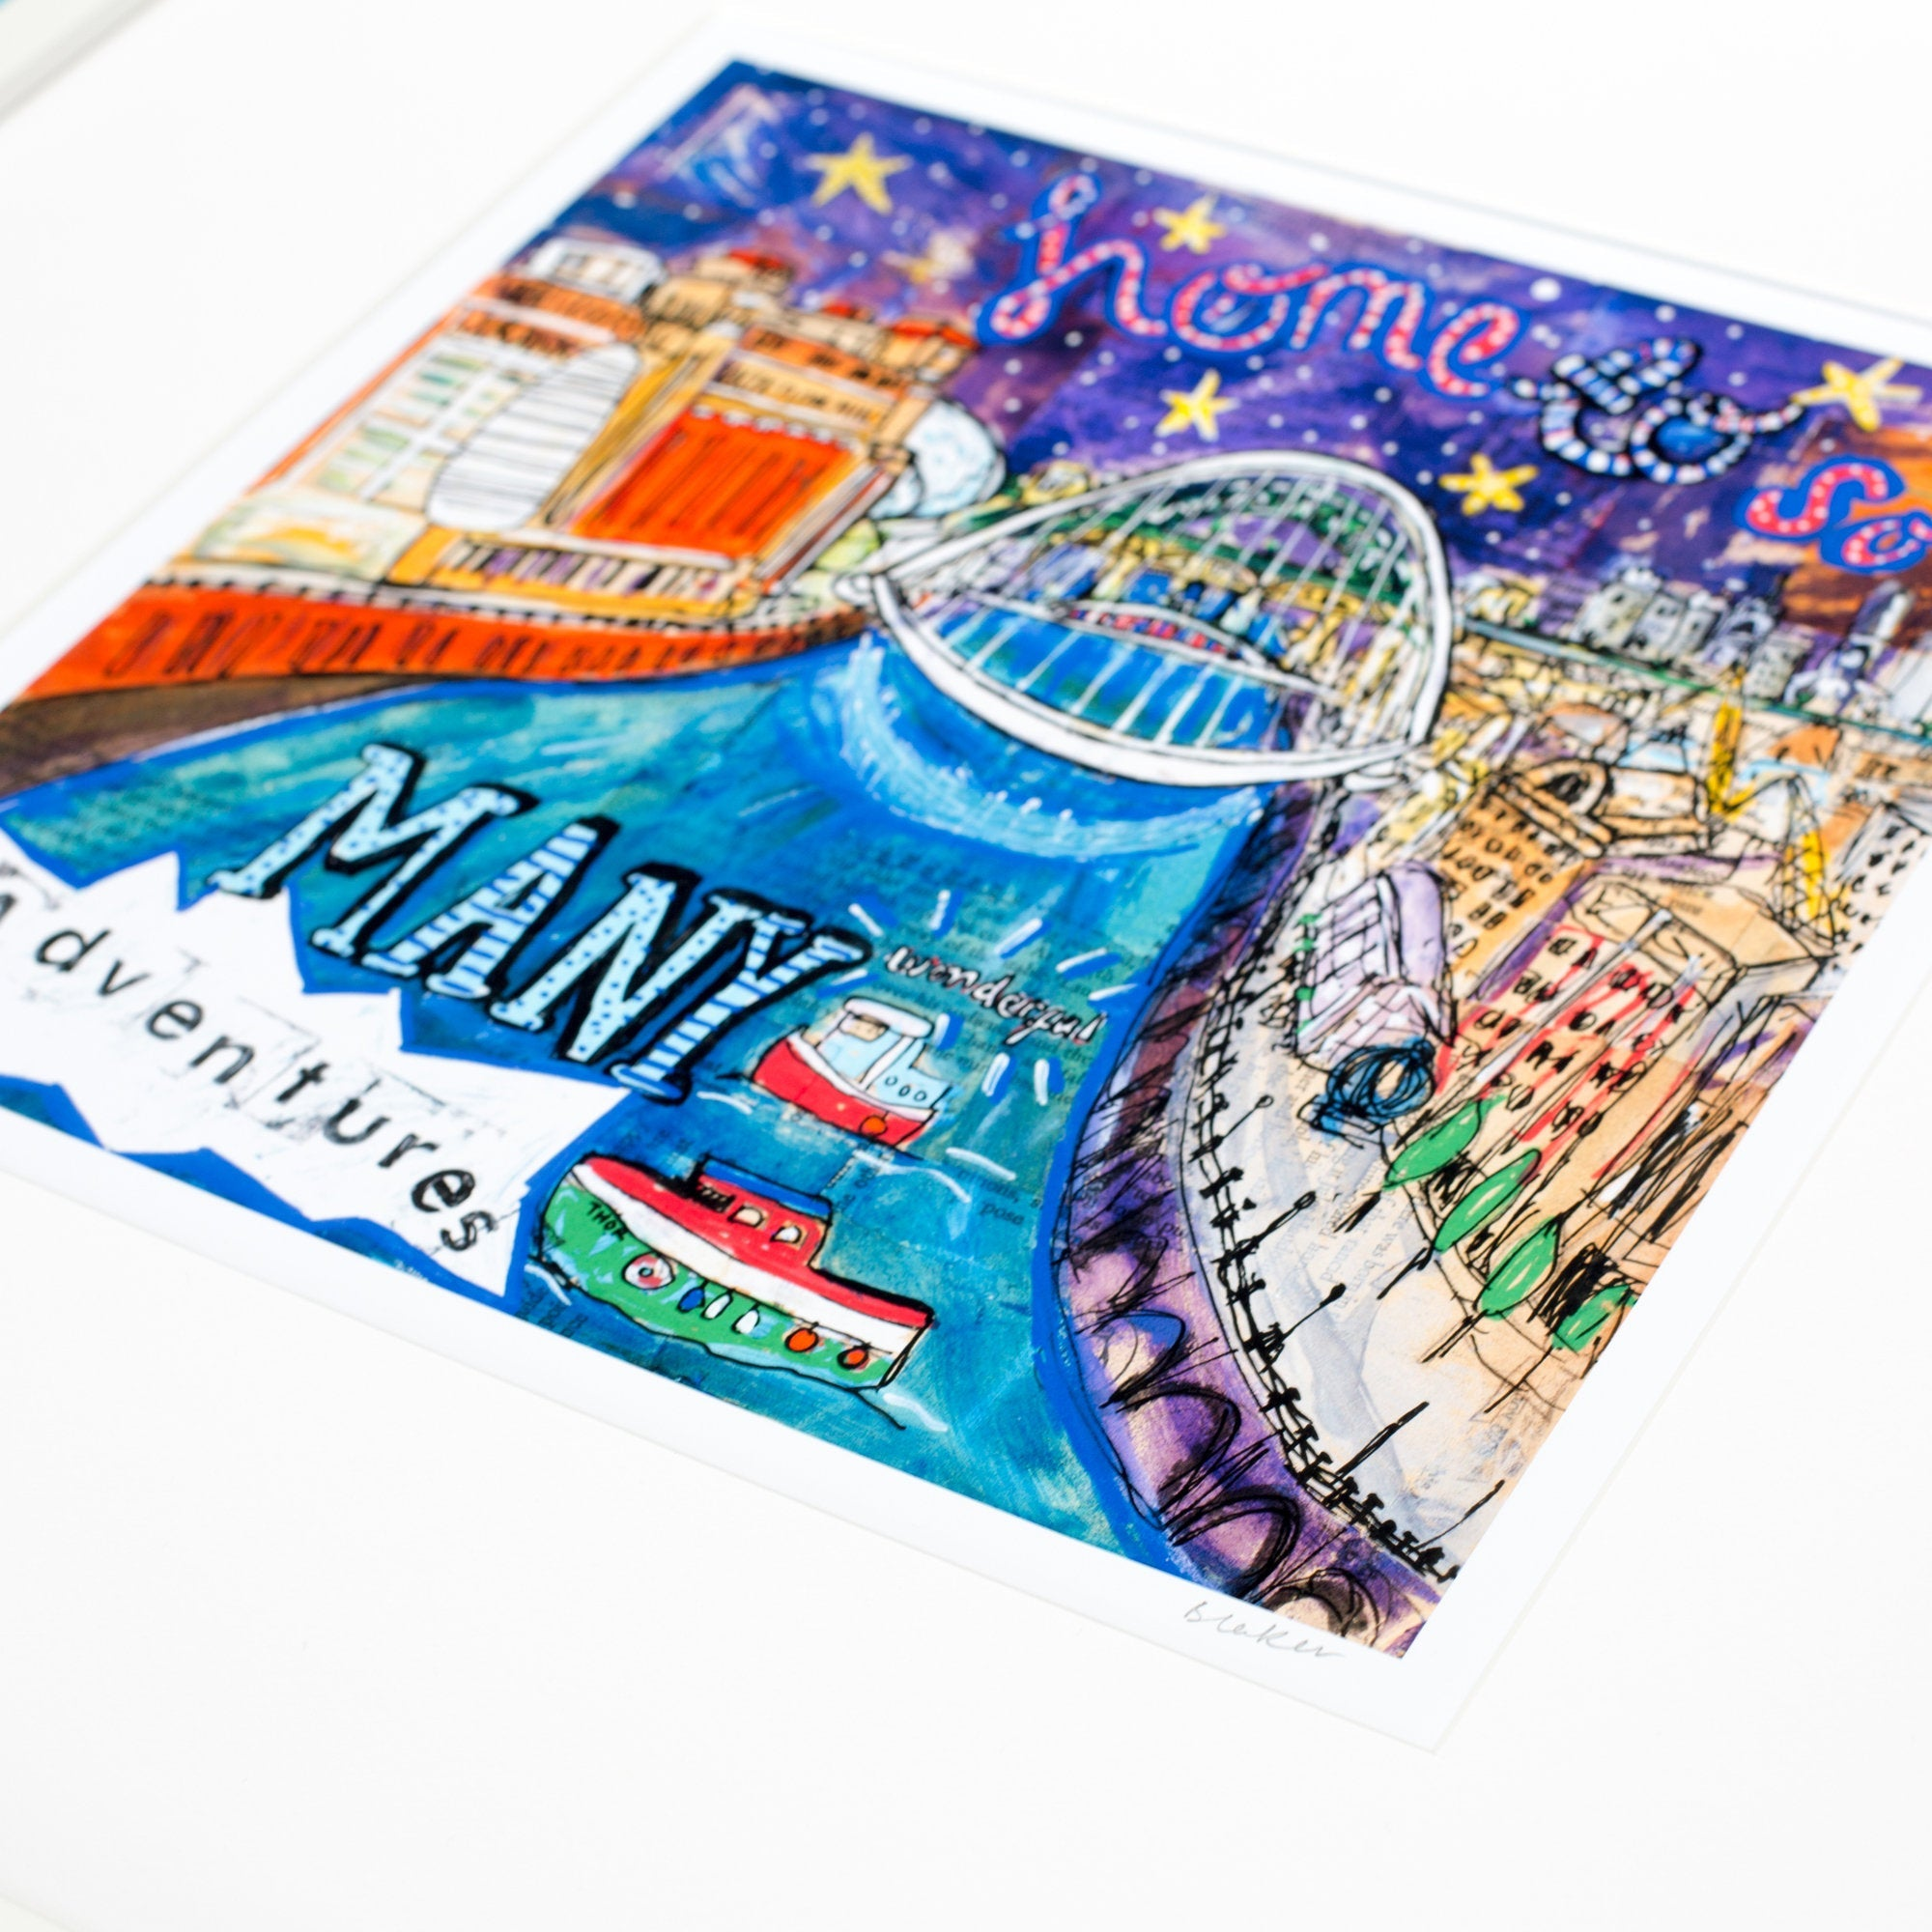 'Toon' Print (Small) Newcastle Quayside